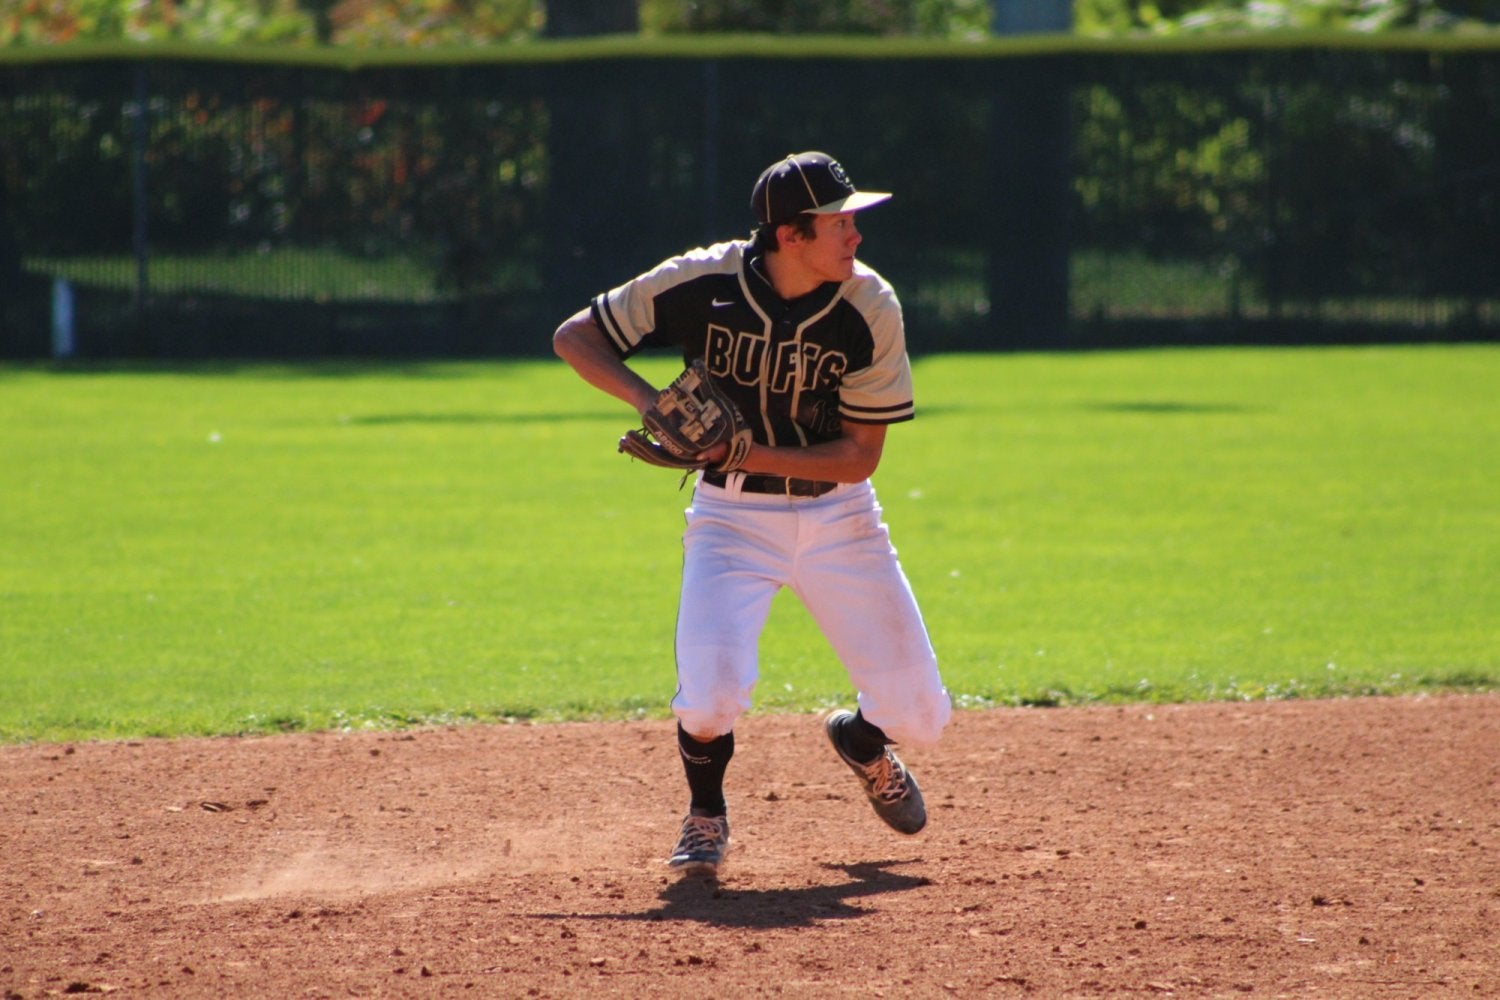 CU baseball player